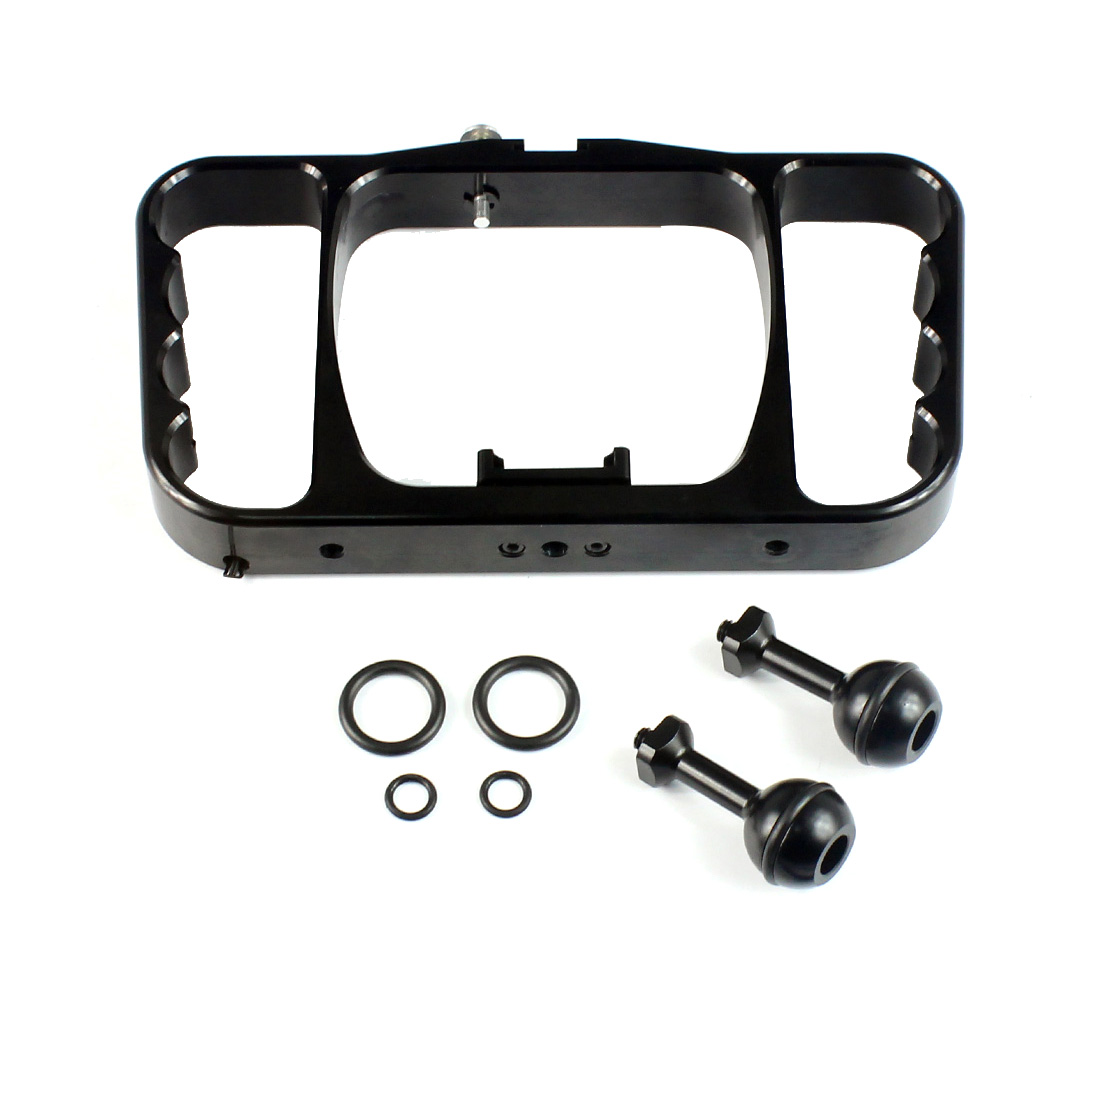 Image 5 - Dual Handle Scuba Diving Bracket Flash Light Mounting Frame Kit for Gopro Hero 7 6 5 4 SJCAM Sony Camera Camcorder Smartphone-in Sports Camcorder Cases from Consumer Electronics